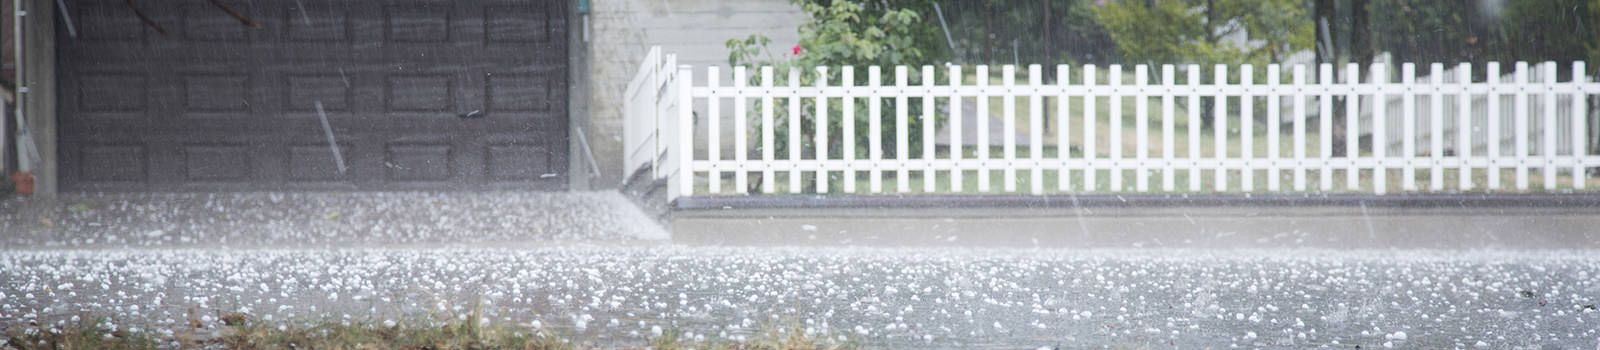 Picture of a heavy hail storm in residential neighborhood.